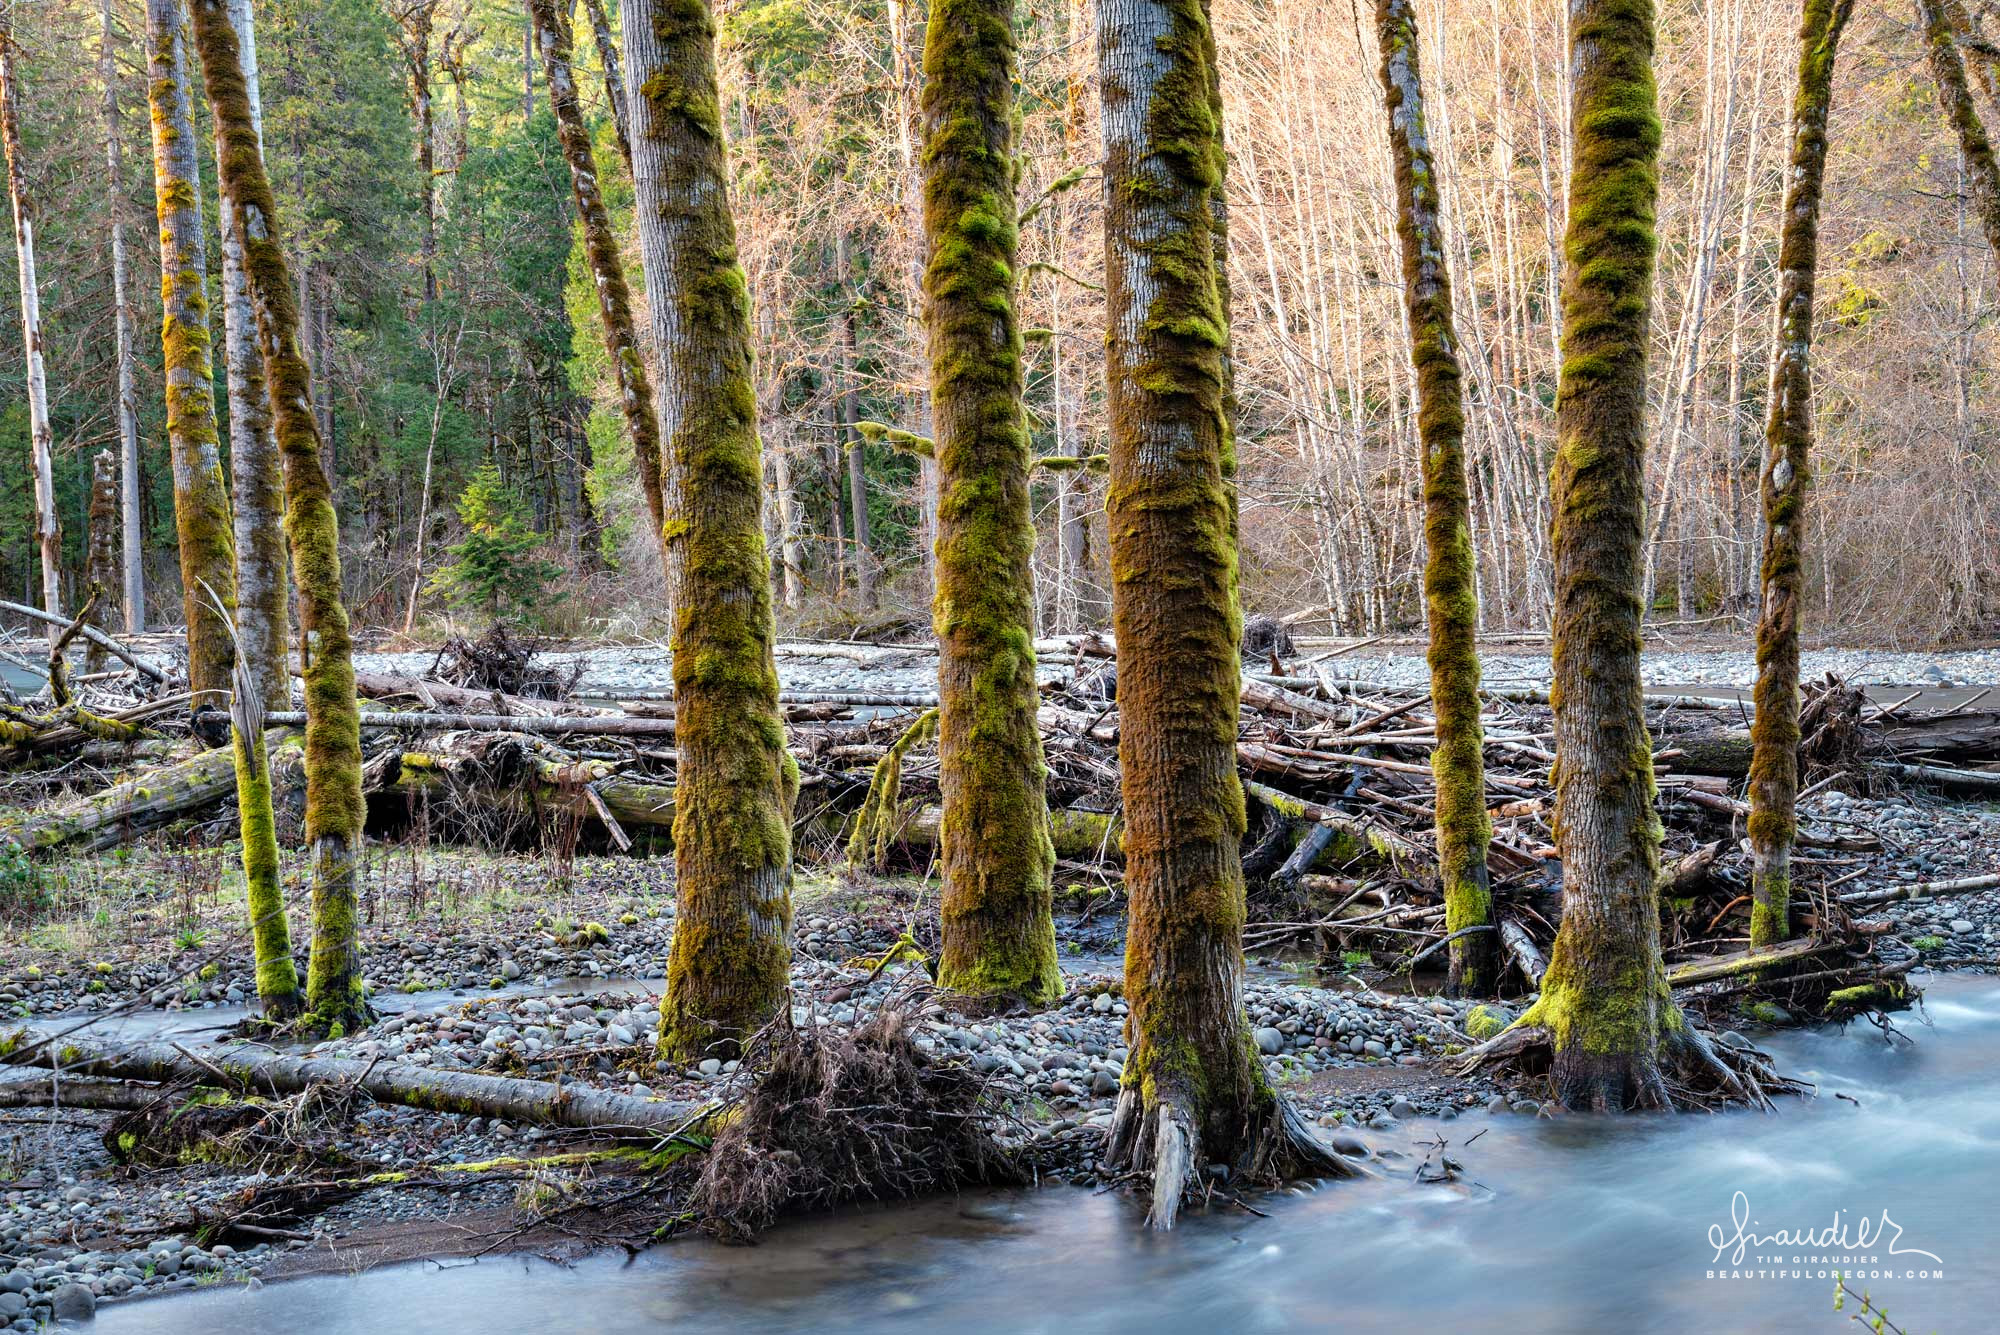 Developing side channel at Salmon Creek with riparian forest and cottonwood trees. Willamette National Forest, Oregon West Cascades.